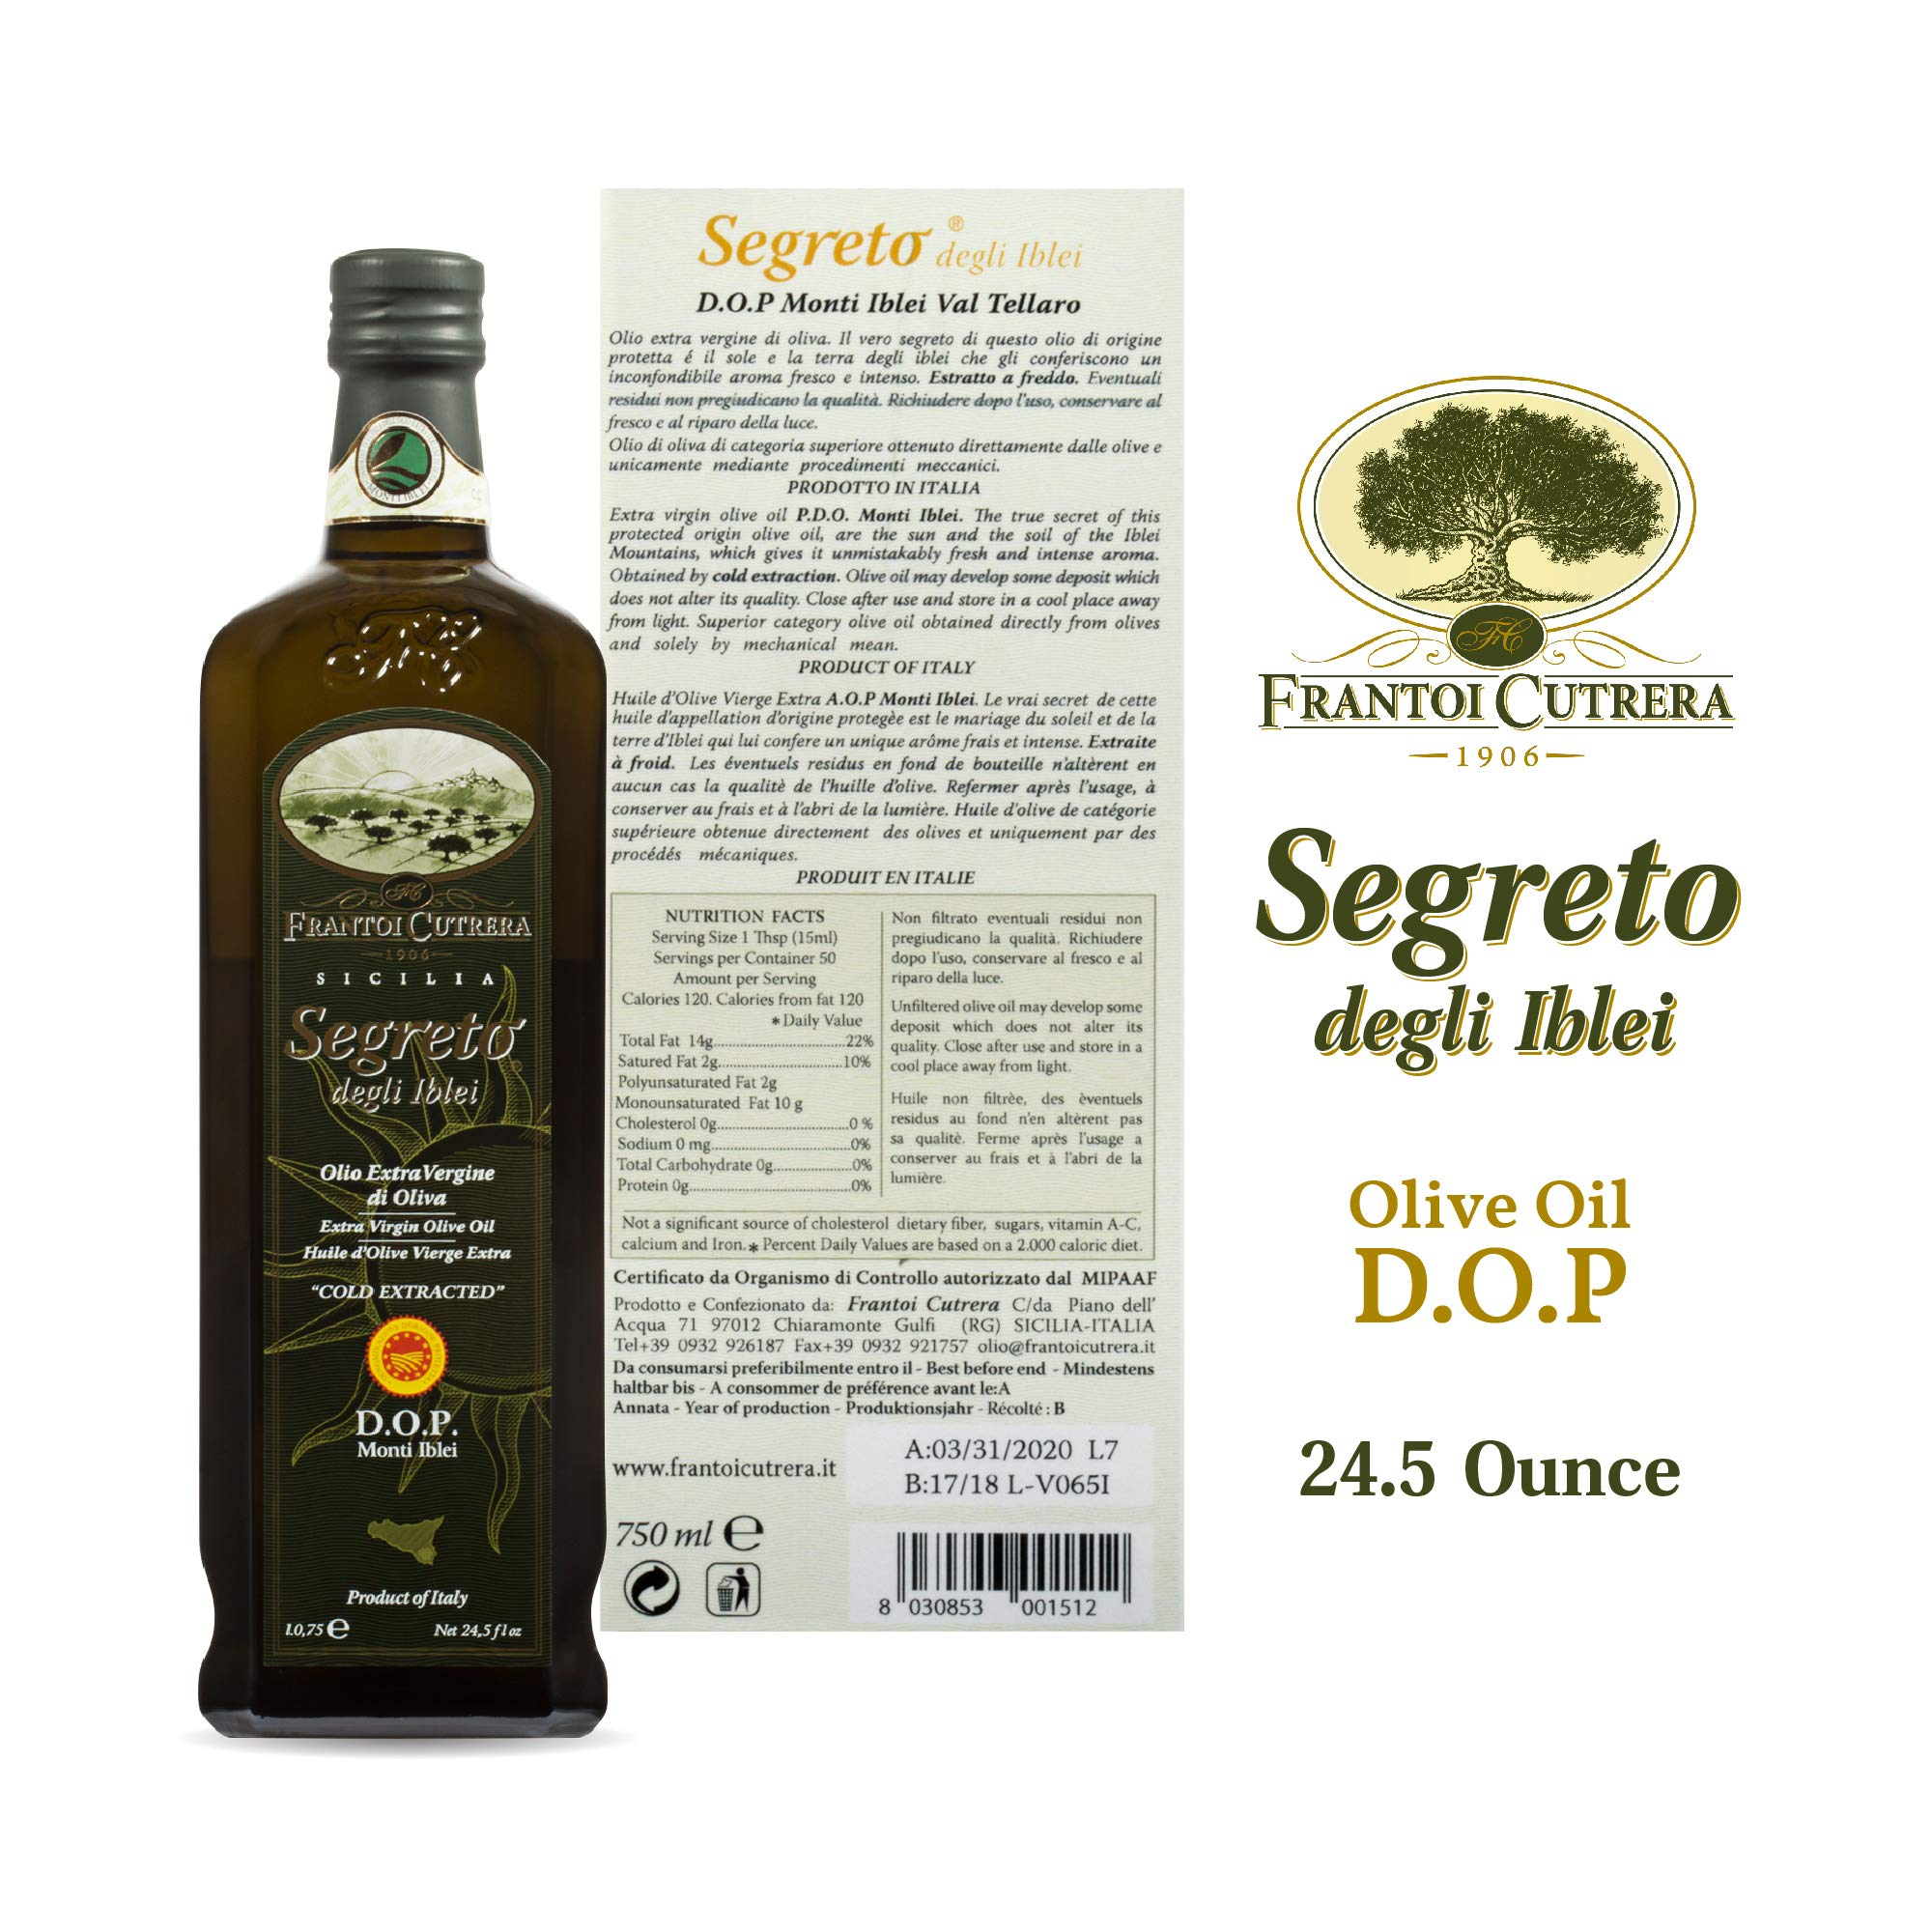 Frantoi Cutrera Segreto Degli Iblei Cold Extracted Extra Virgin Olive Oil D.O.P - Product of Italy, 24.5fl.oz (2 pack) by Frantoi Cutrera (Image #2)